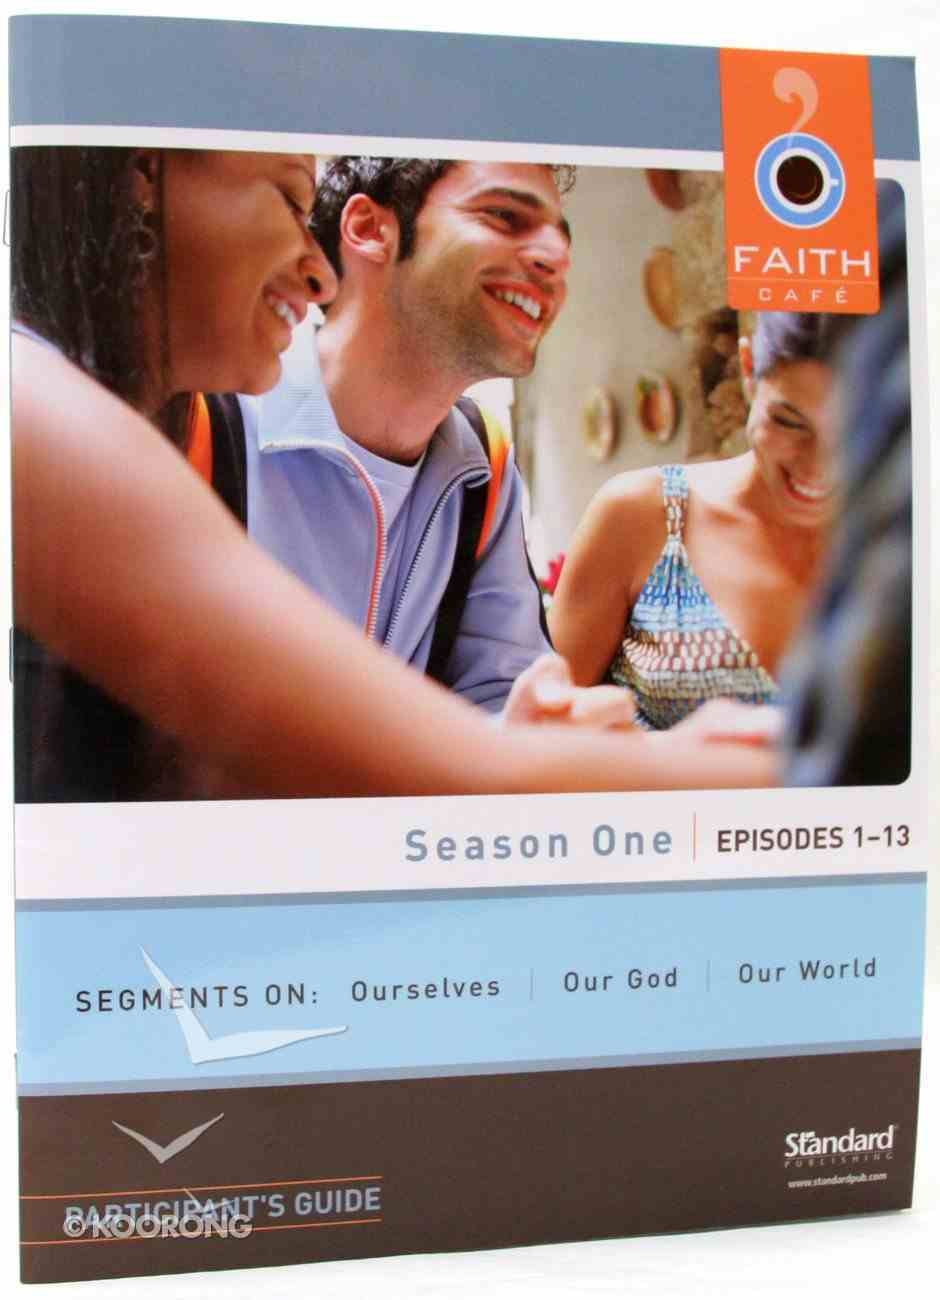 Season One Episodes 1-13 : Segments on Ourselves, Our God, Our World (Participant's Guide) (Faith Cafe Series) Paperback